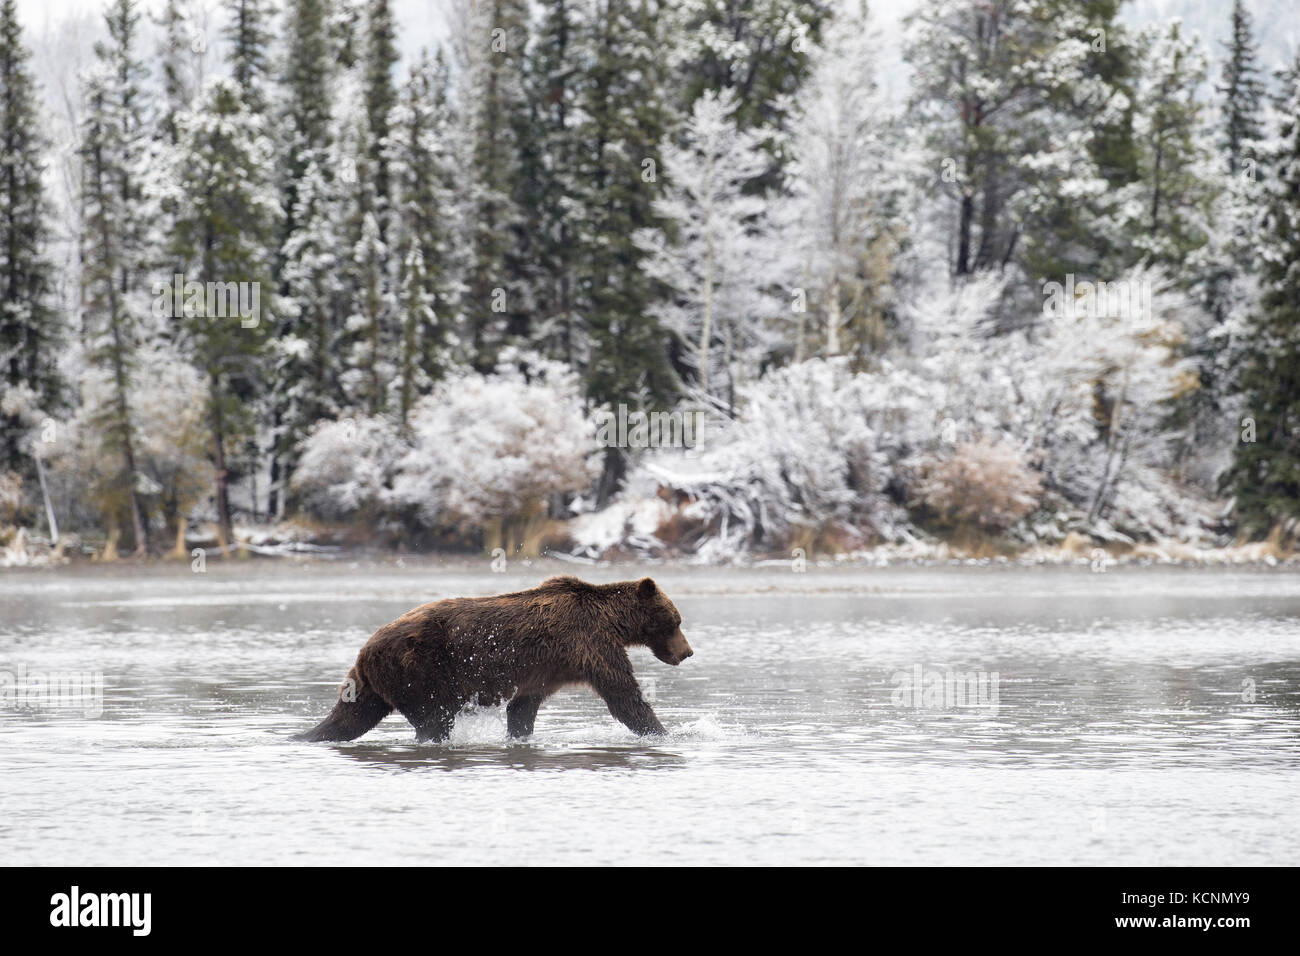 Grizzly bear (Ursus arctos horribilis), male in early snowfall, Chilcotin Region, British Columbia, Canada. - Stock Image